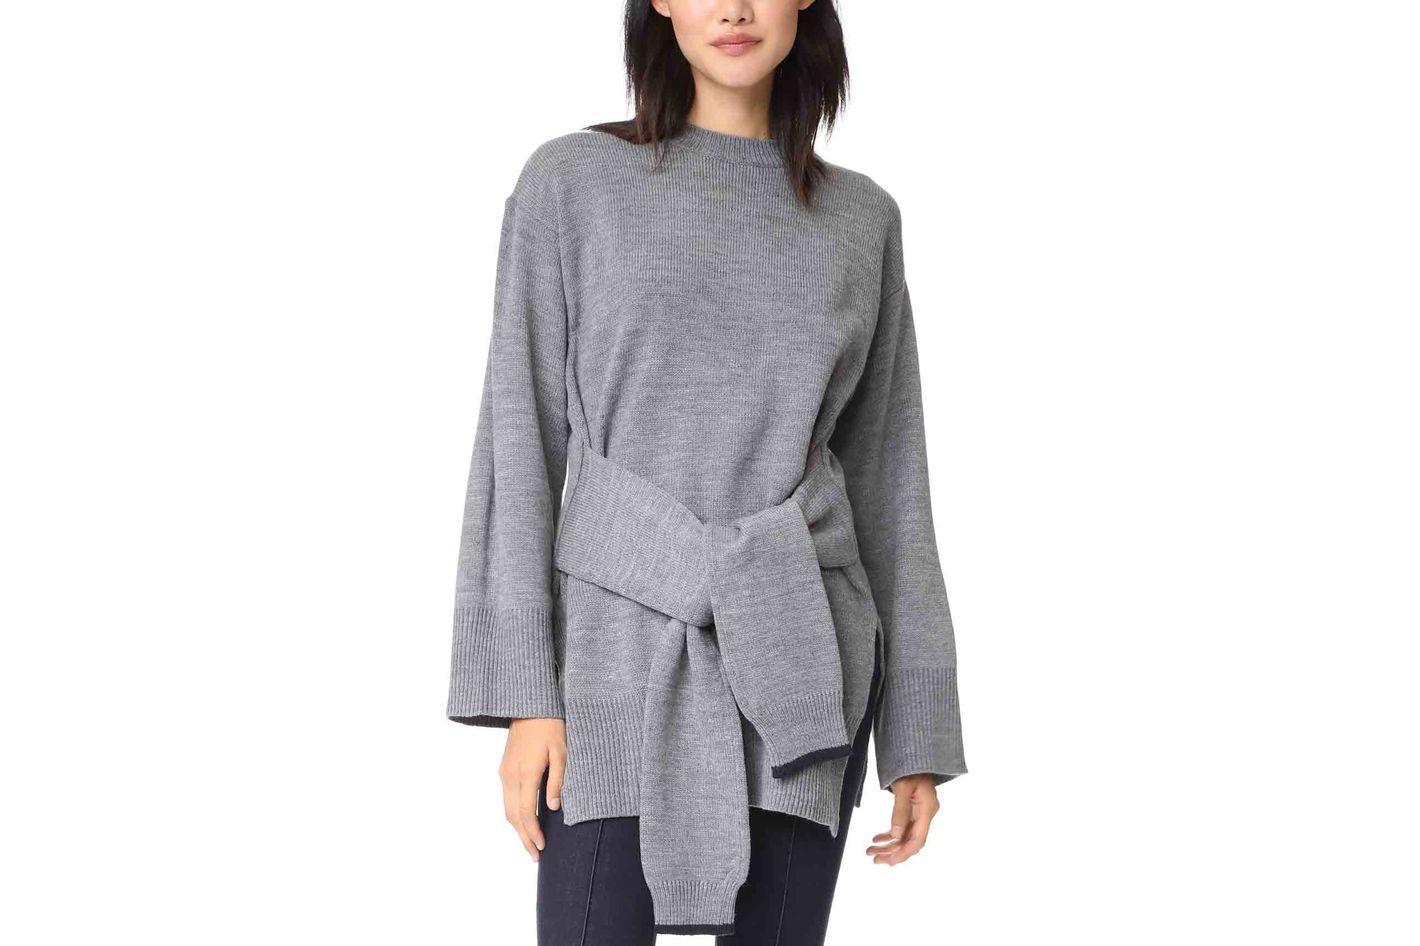 J.O.A. Tie-Front Sweater